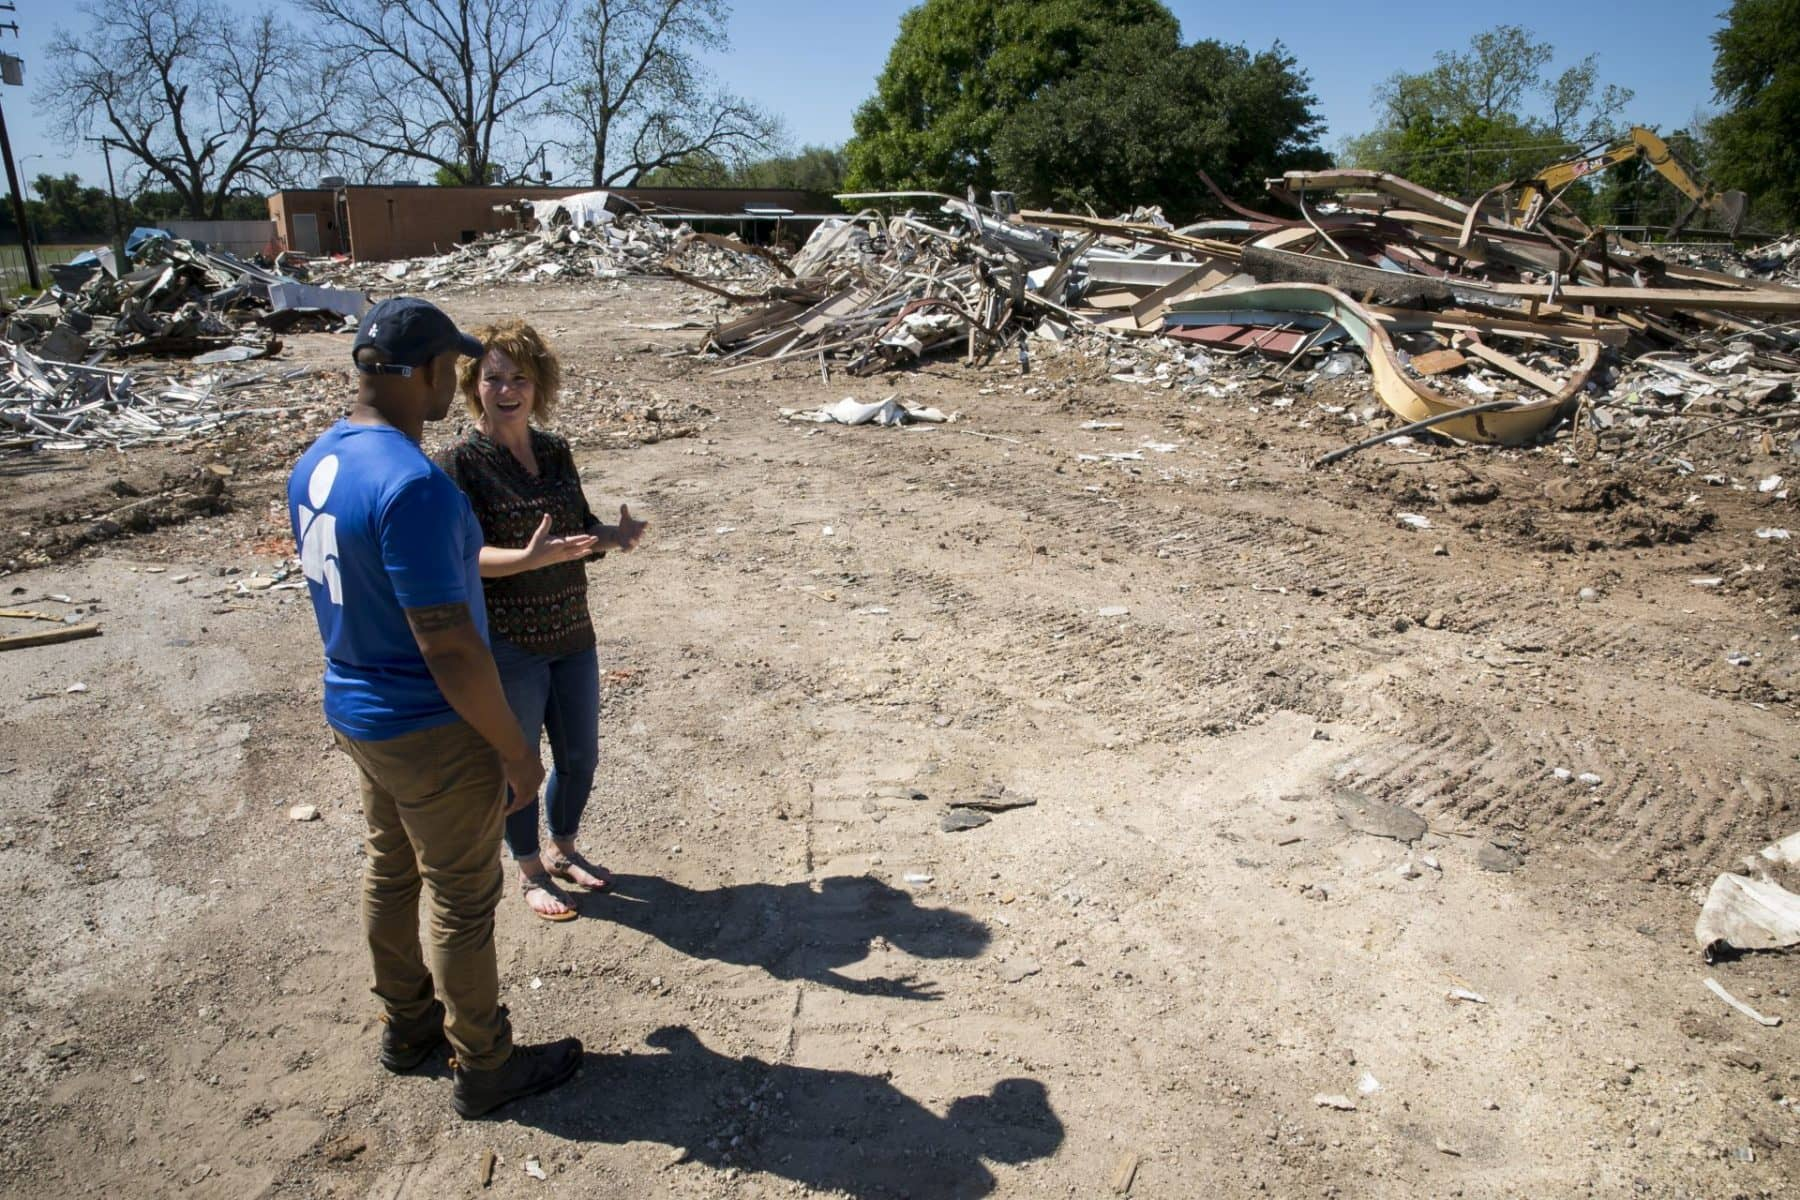 Stephanie Konvicka, who is organizing psychosocial programs for the Matagorda Episcopal Health Outreach Program to help Hurricane Harvey survivors cope with stress and trauma, gives Americares relief worker Curtis Barnes a tour of the storm recovery in her hometown of Wharton, Texas. Here they observe the demolition of the Just Do it Now community center, which was badly damaged in the storm. Konvicka is organizing yoga and art therapy classes to help community members come together and heal with funding from Americares Hurricane Harvey Recovery Program.